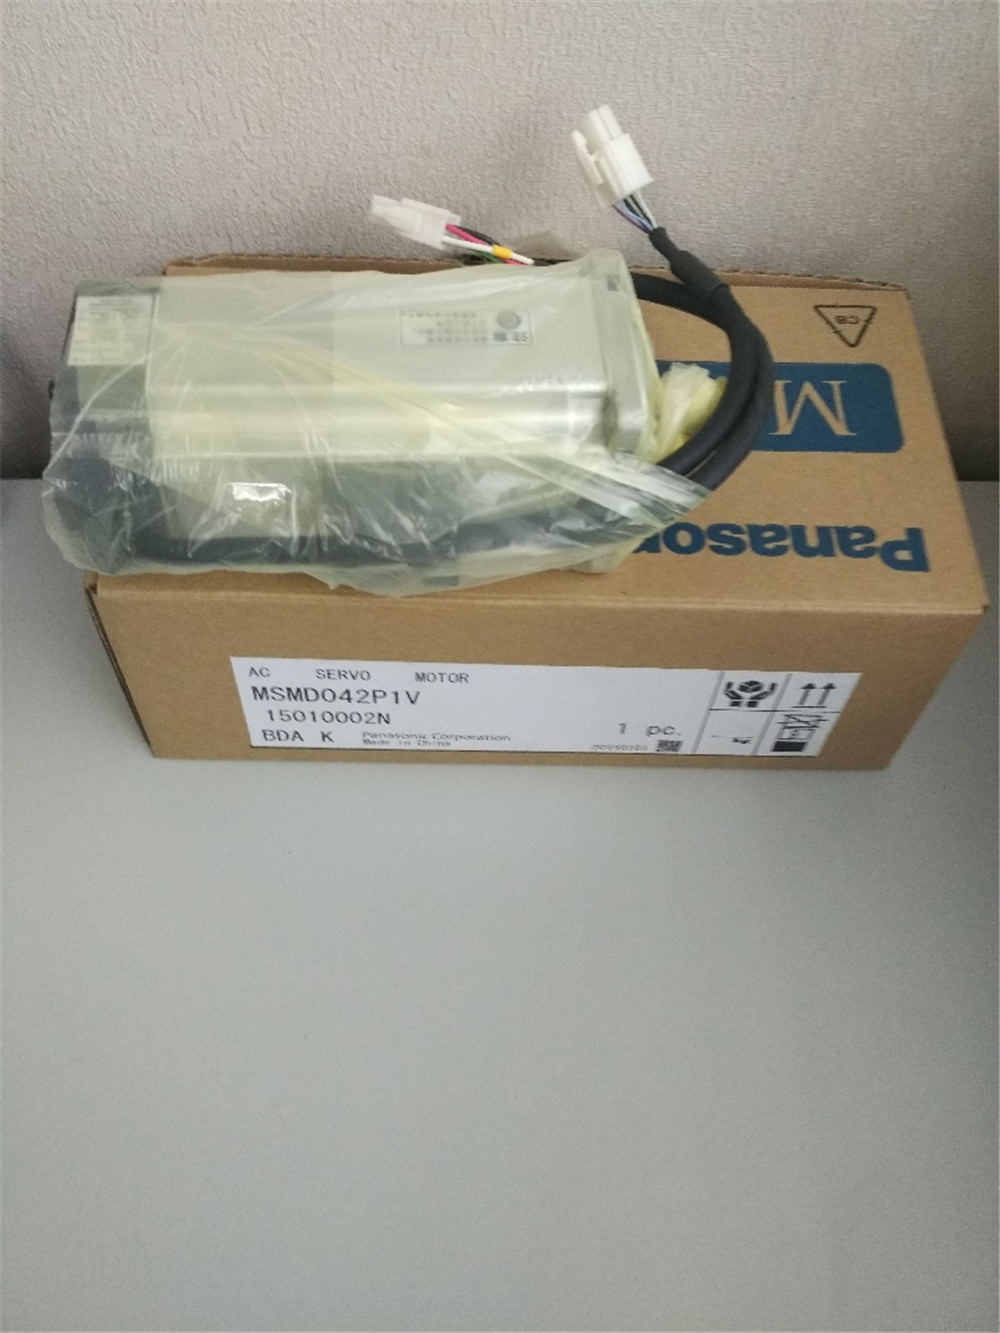 100% NEW PANASONIC AC Servo motor MSMD042P1V in box